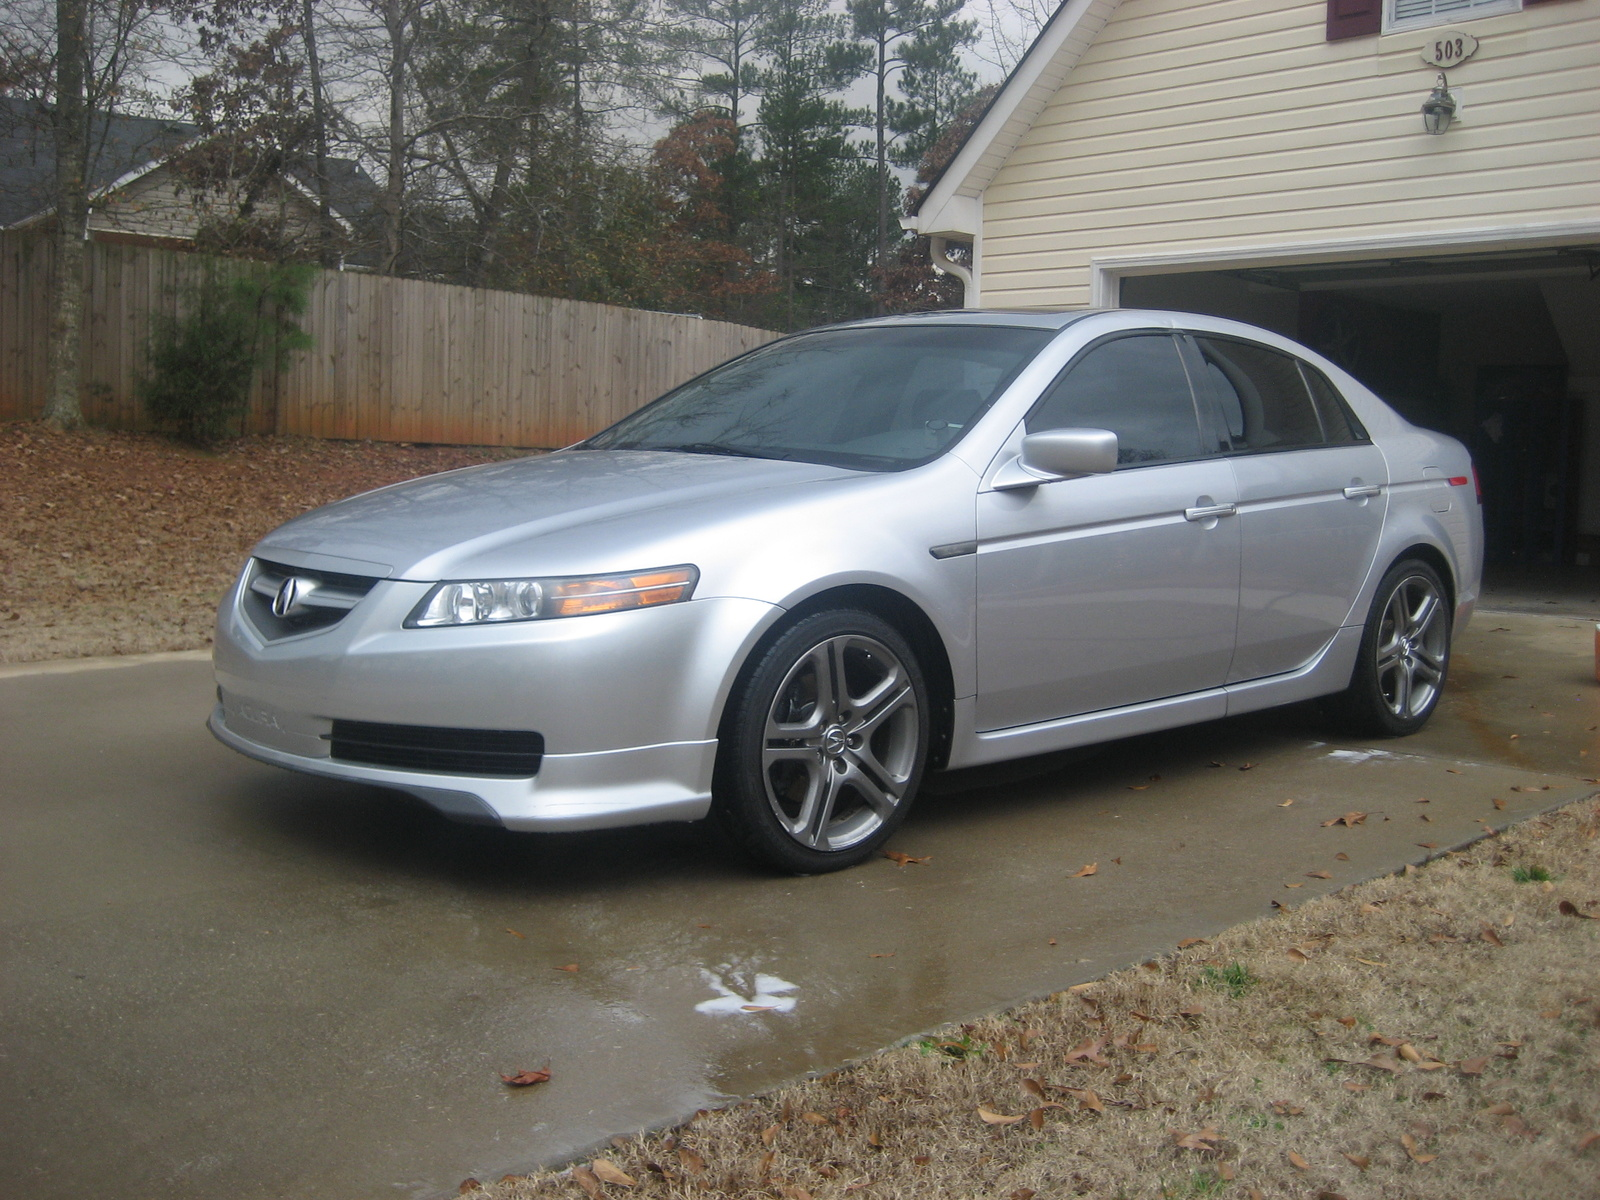 51540 Marvel  ics Acura Marketing C aign likewise Interior 52437874 additionally 2004 Acura TL Pictures C1061 pi35739105 furthermore Exterior 89136803 moreover Toyota Sequoia All Weather Floor Mats. on 2002 acura mdx